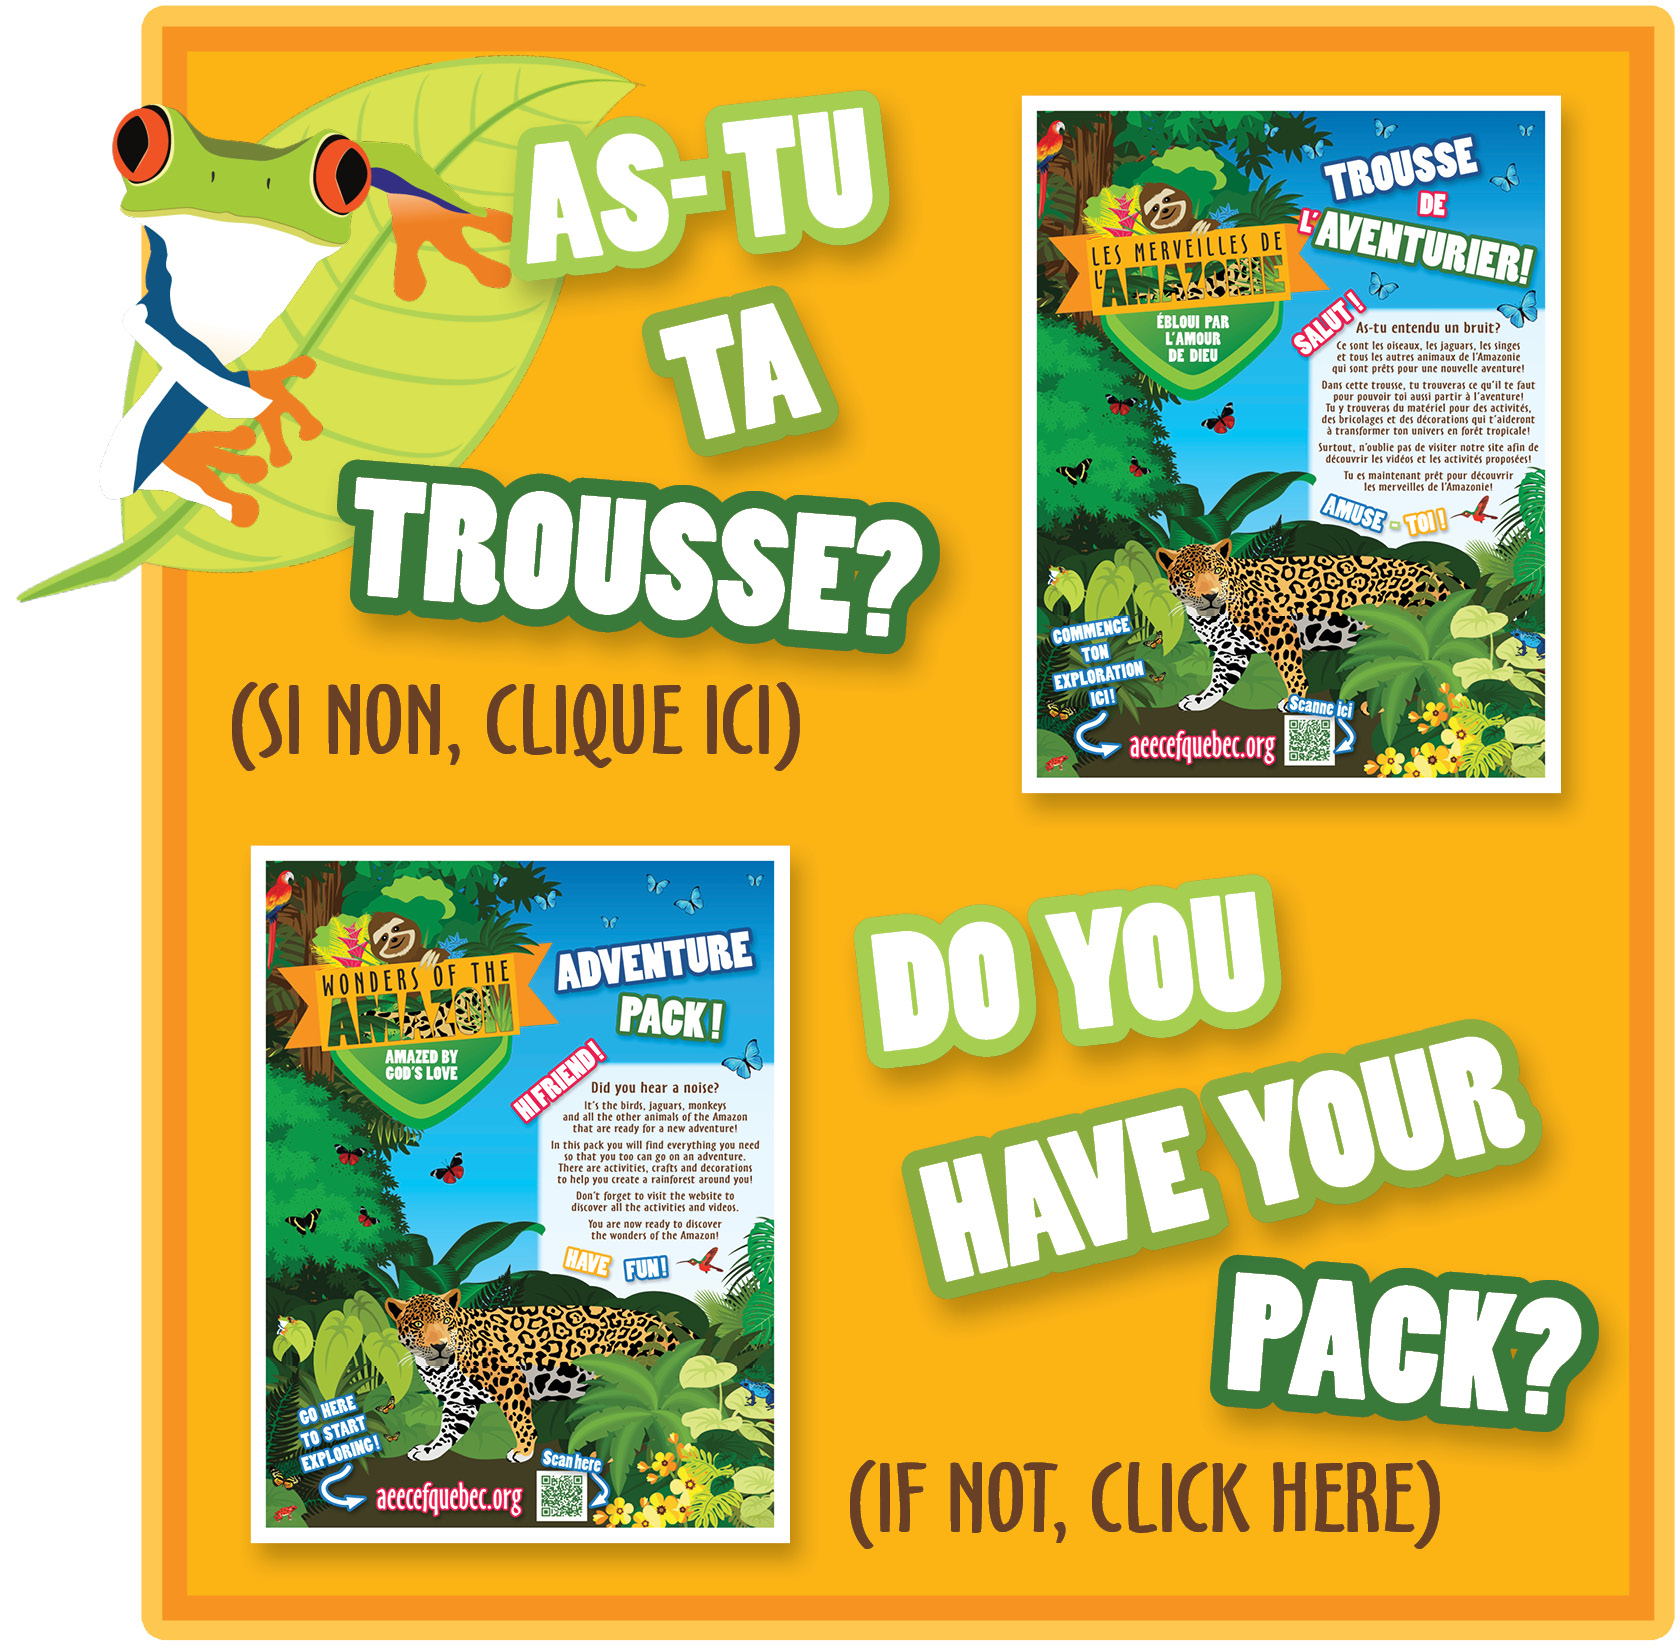 As-tu ta trousse? Do you have your Pack?